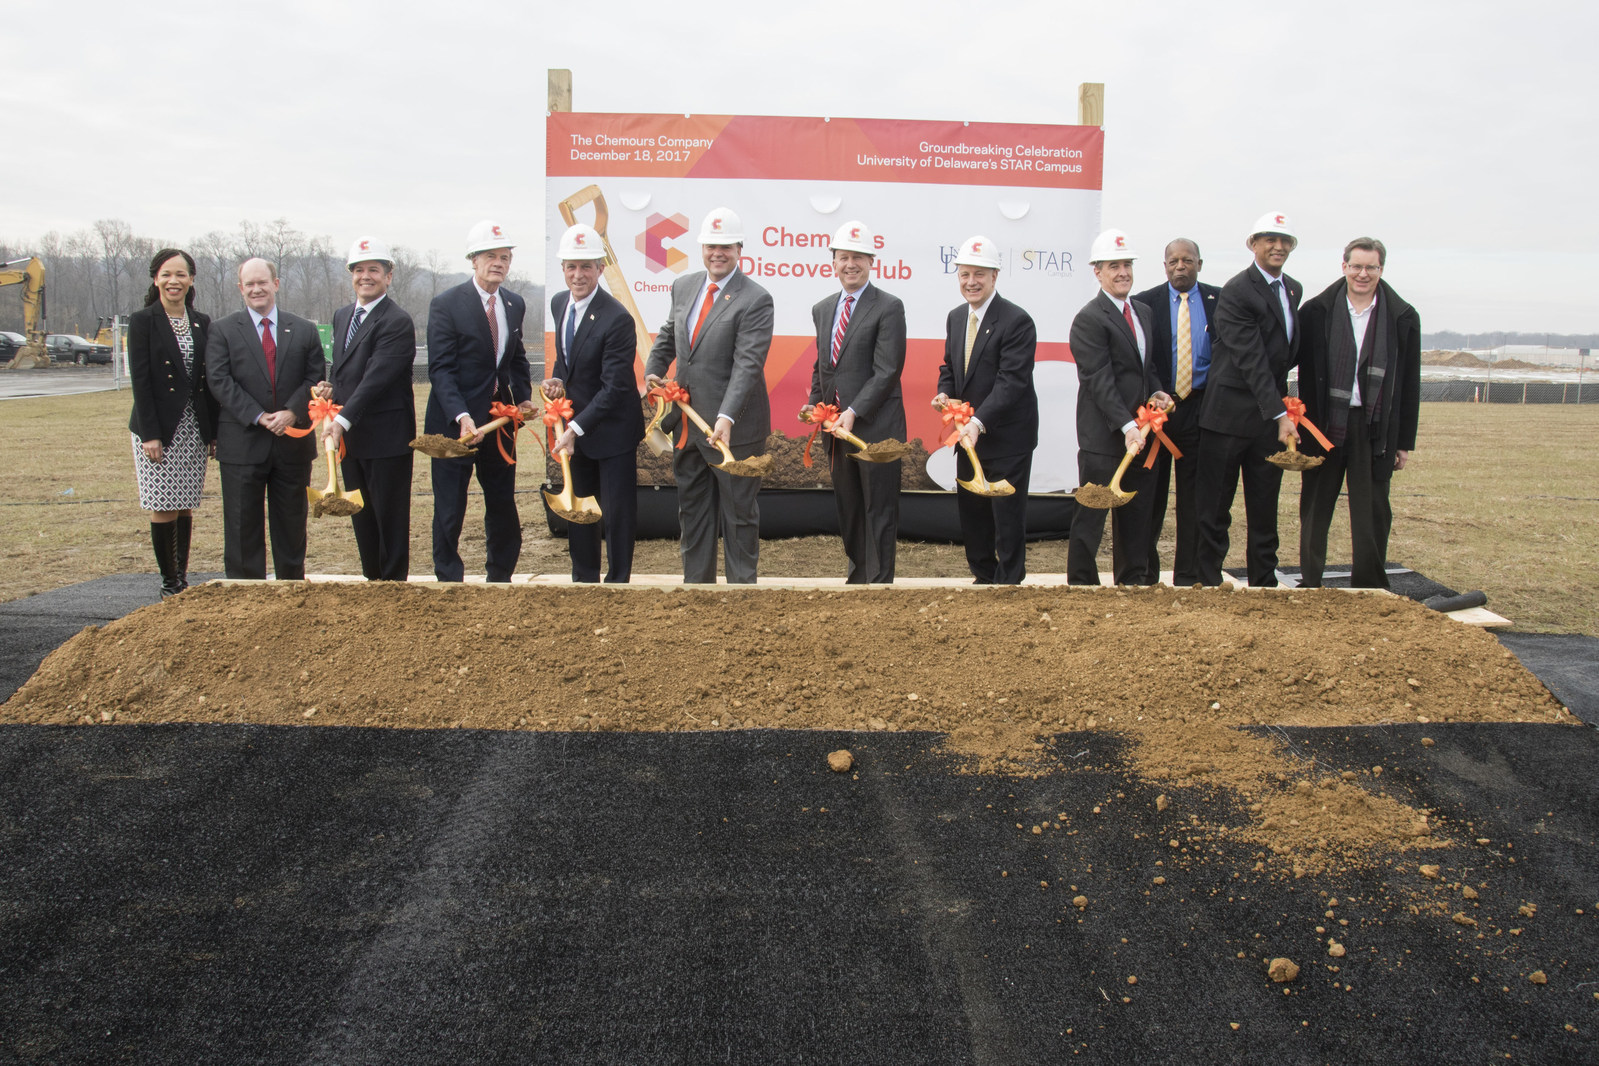 Ground breaking of the new Chemours Discovery Hub at the University of Delaware's STAR Campus (Source: Chemours)